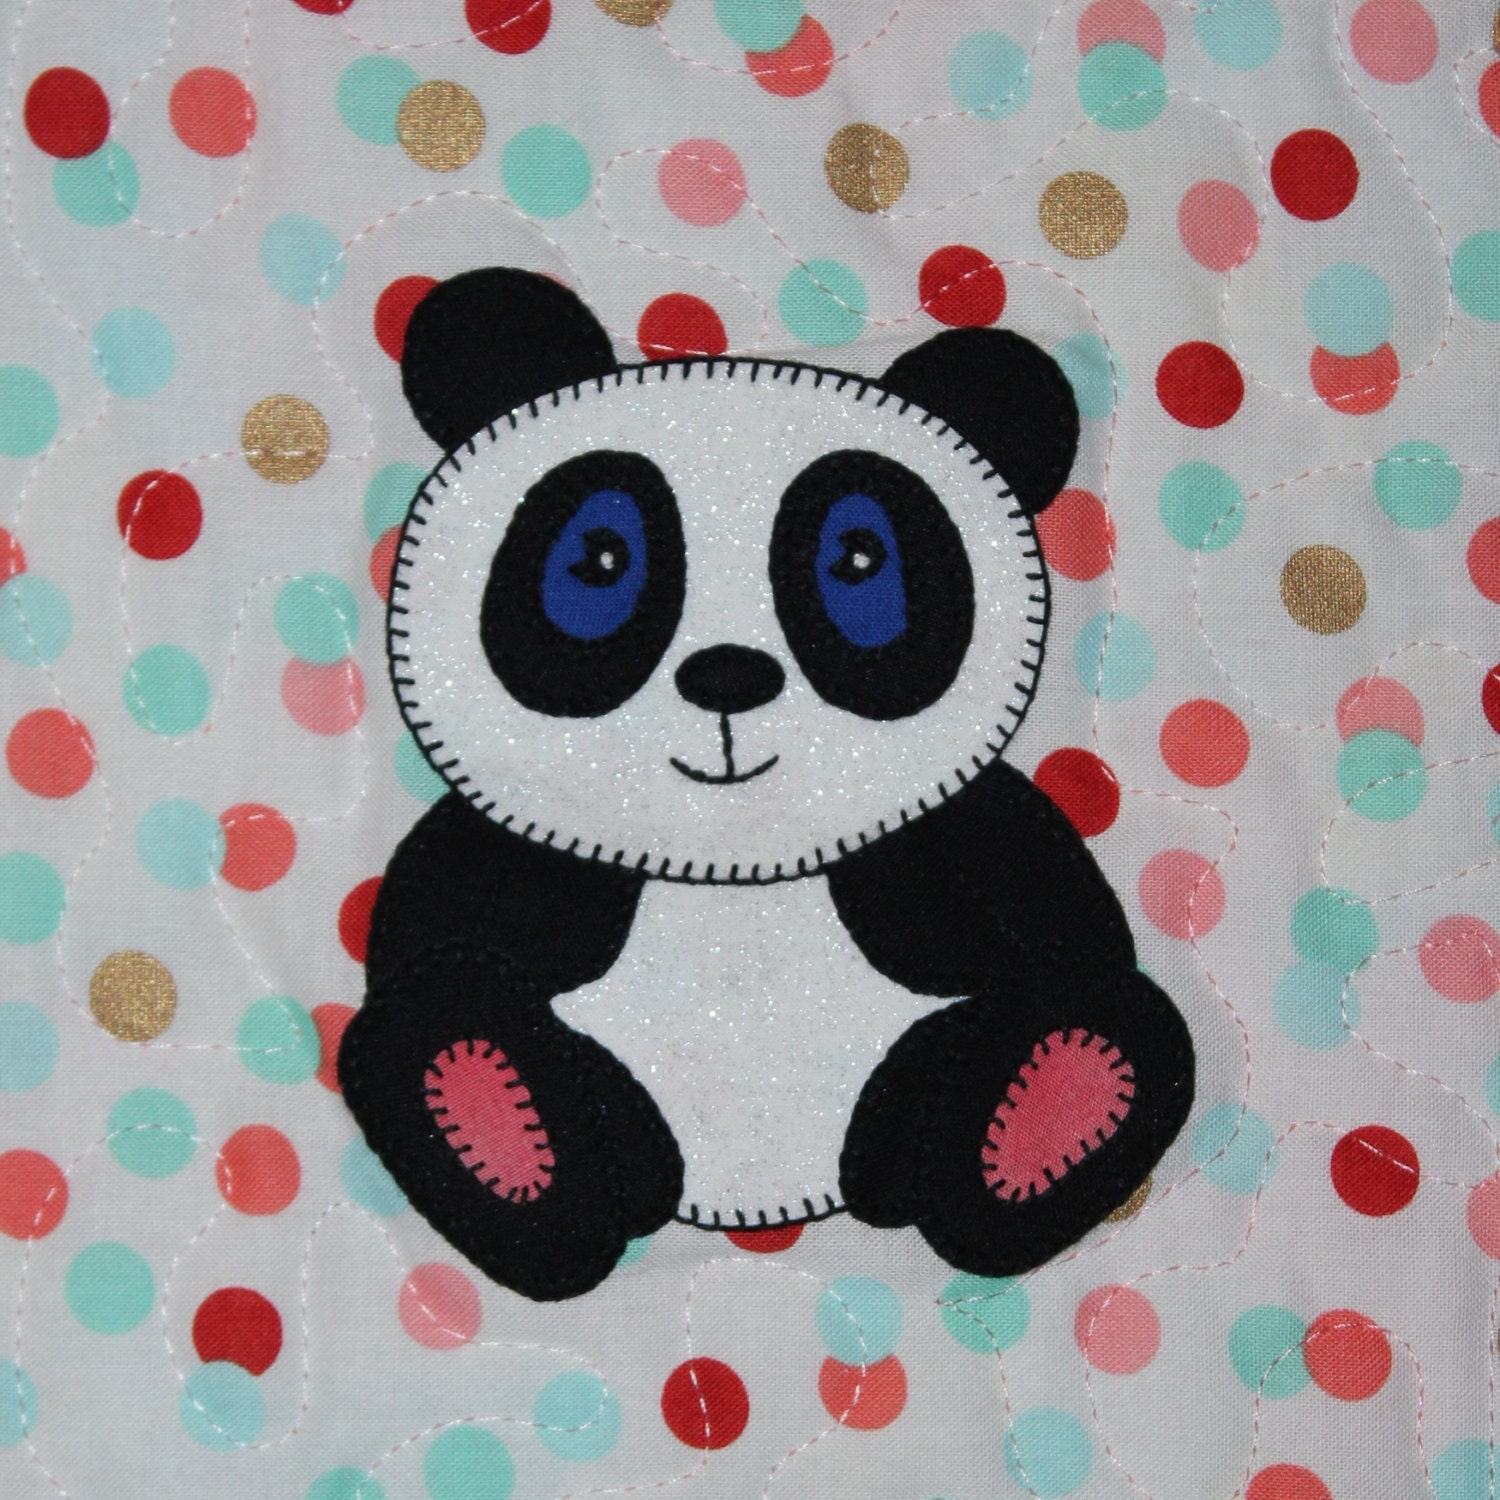 Panda Pdf Applique Quilt Pattern Whimsical Giant Panda